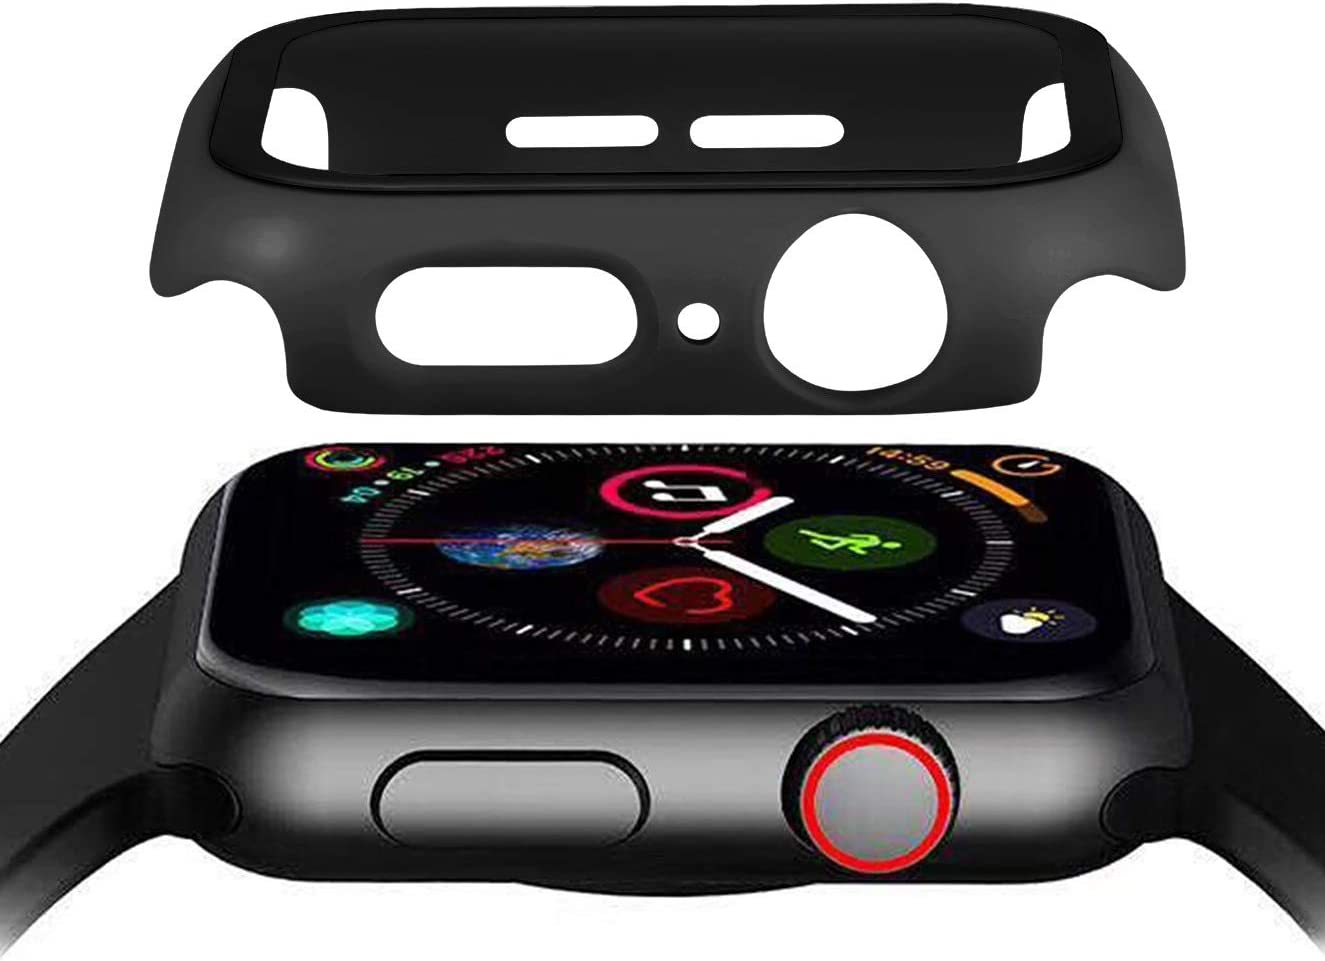 Hontao Matte Hard PC Case Bumper with Tempered Glass Screen Protector Compatible with iWatch 38mm 40mm 42mm 44mm Series 3/2/1 (Black, 38mm)